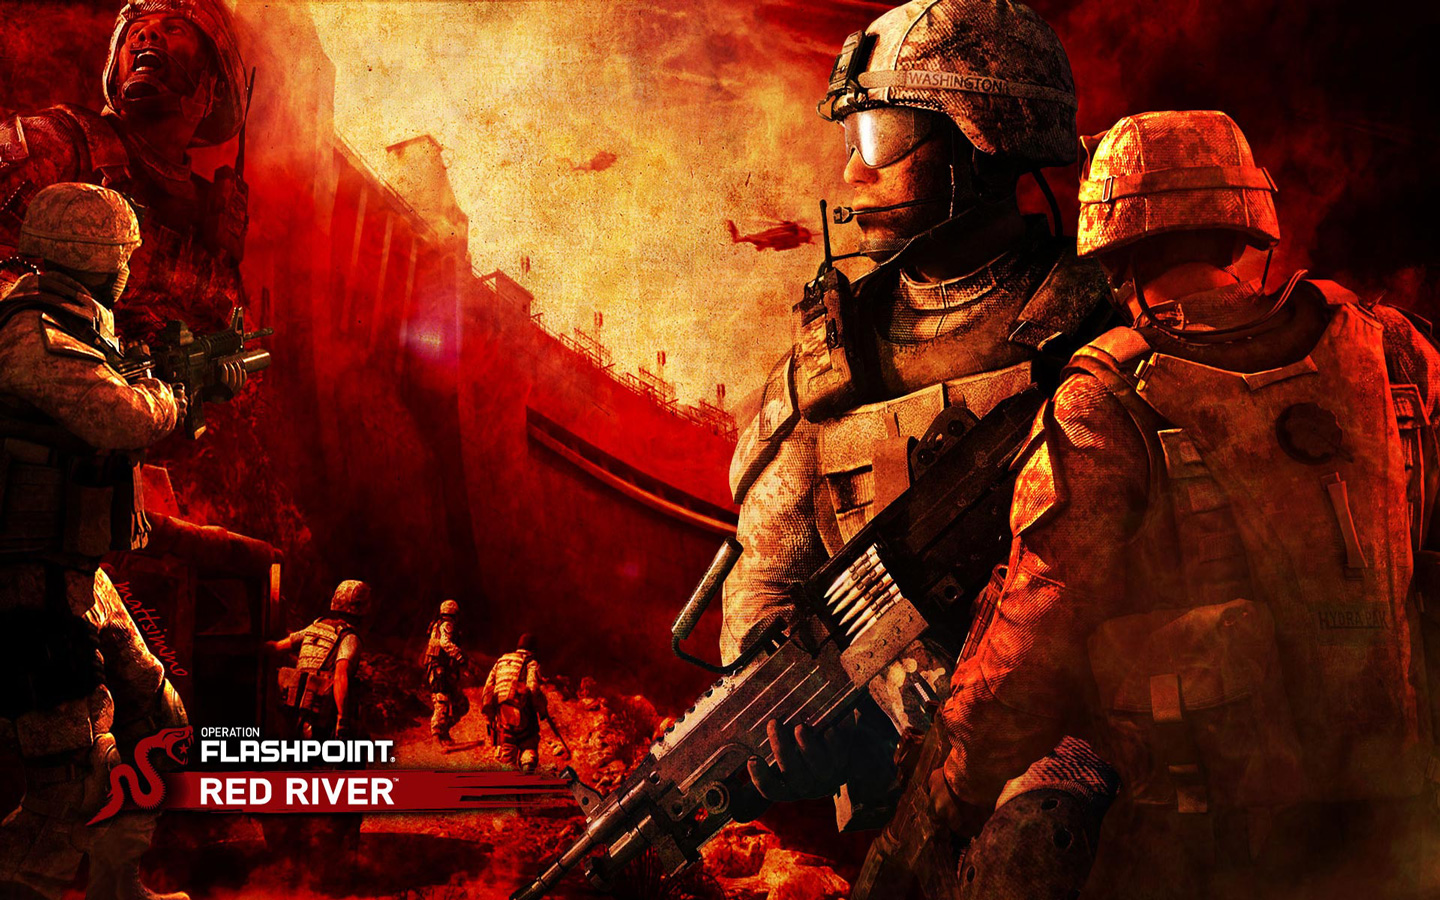 Operation Flashpoint: Red River Wallpaper in 1440x900